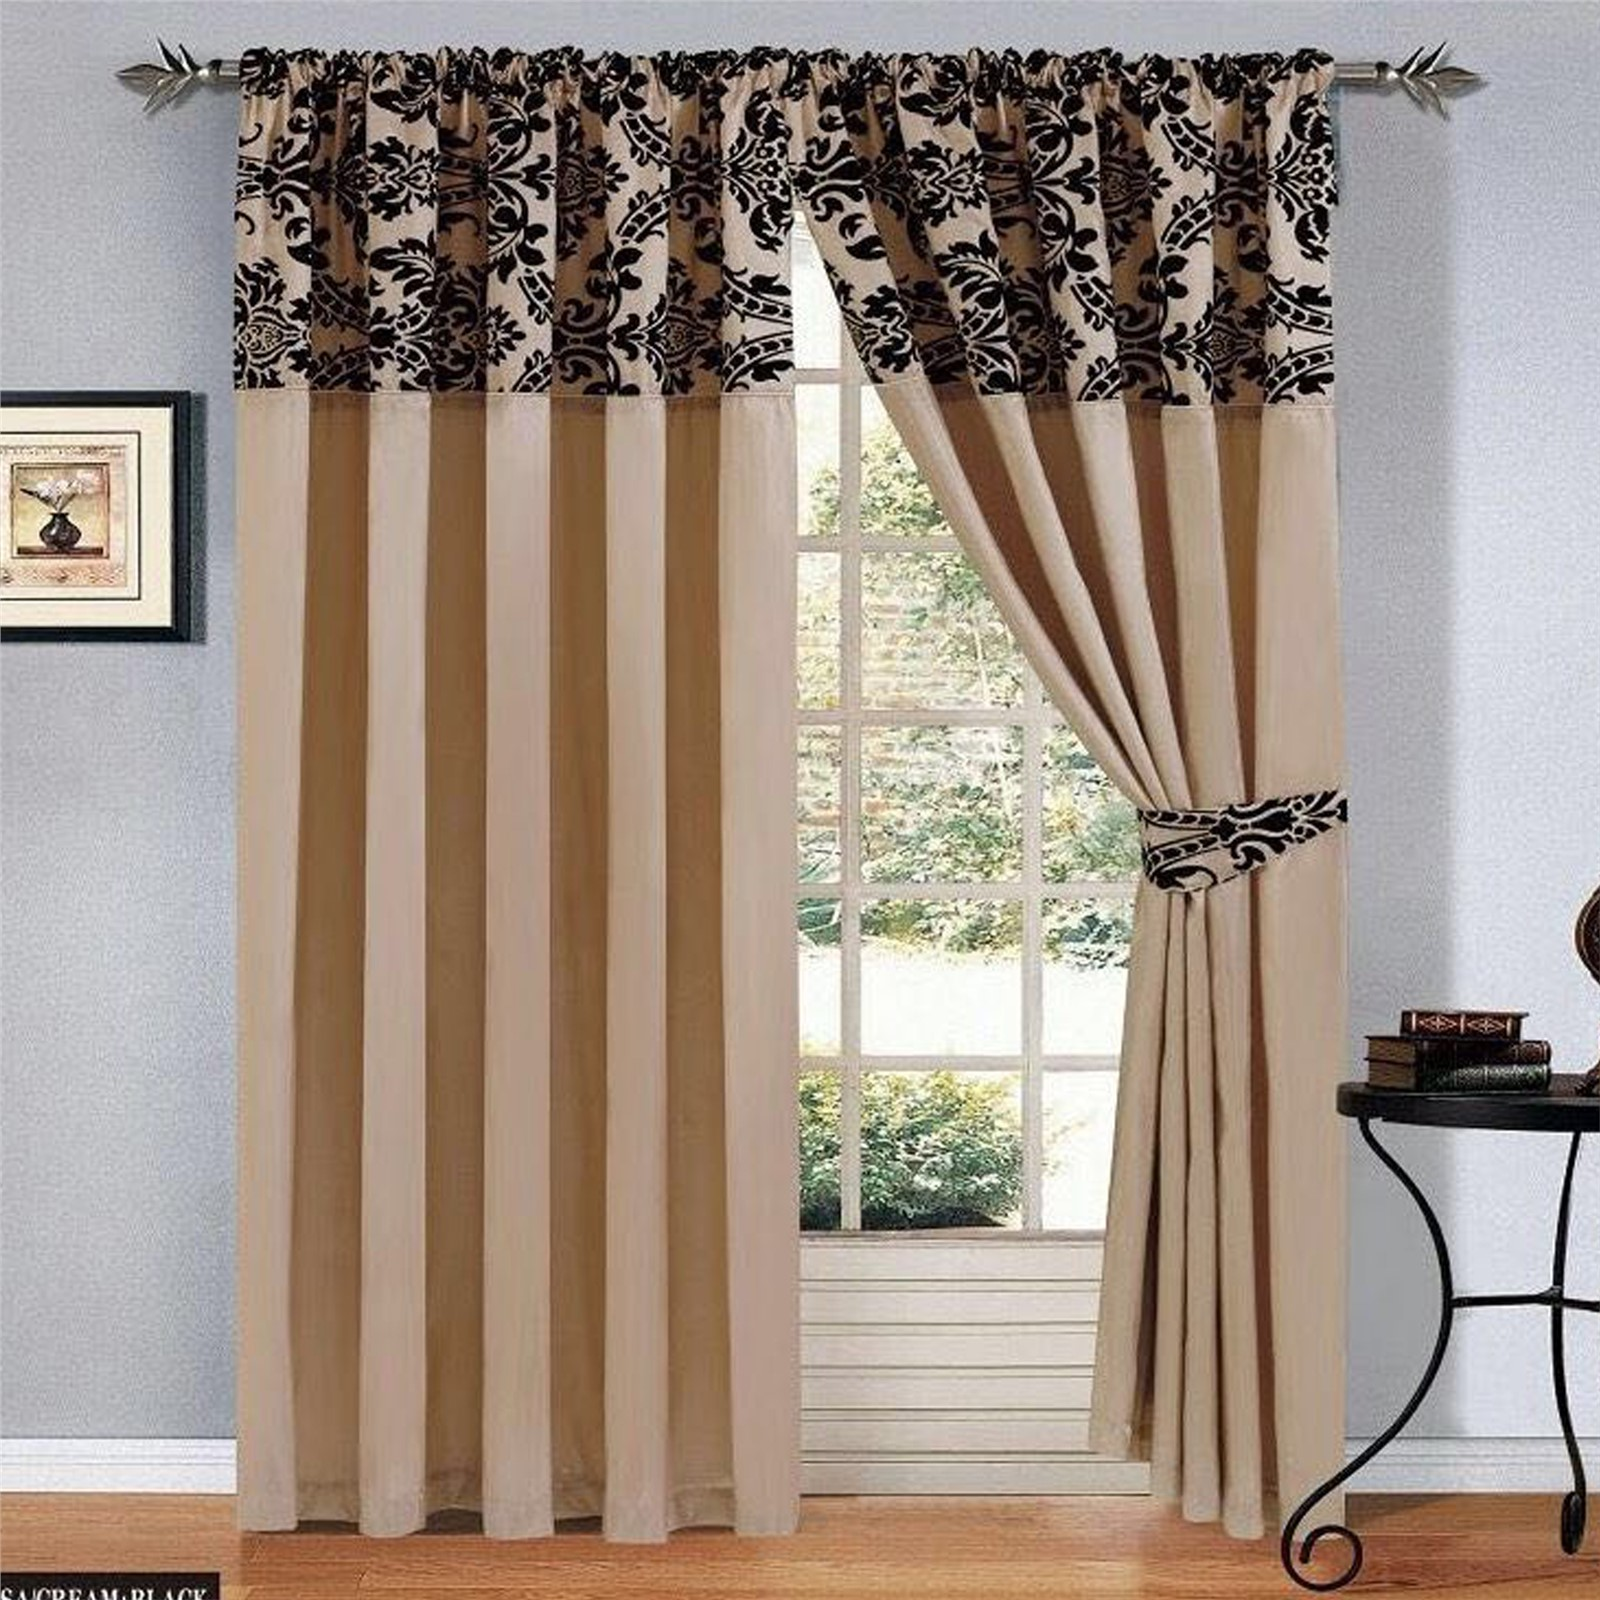 amazon bella white curtain com with wide drapes long dp and grommet pink blackout inches kitchen x damask drape home one top panel lining